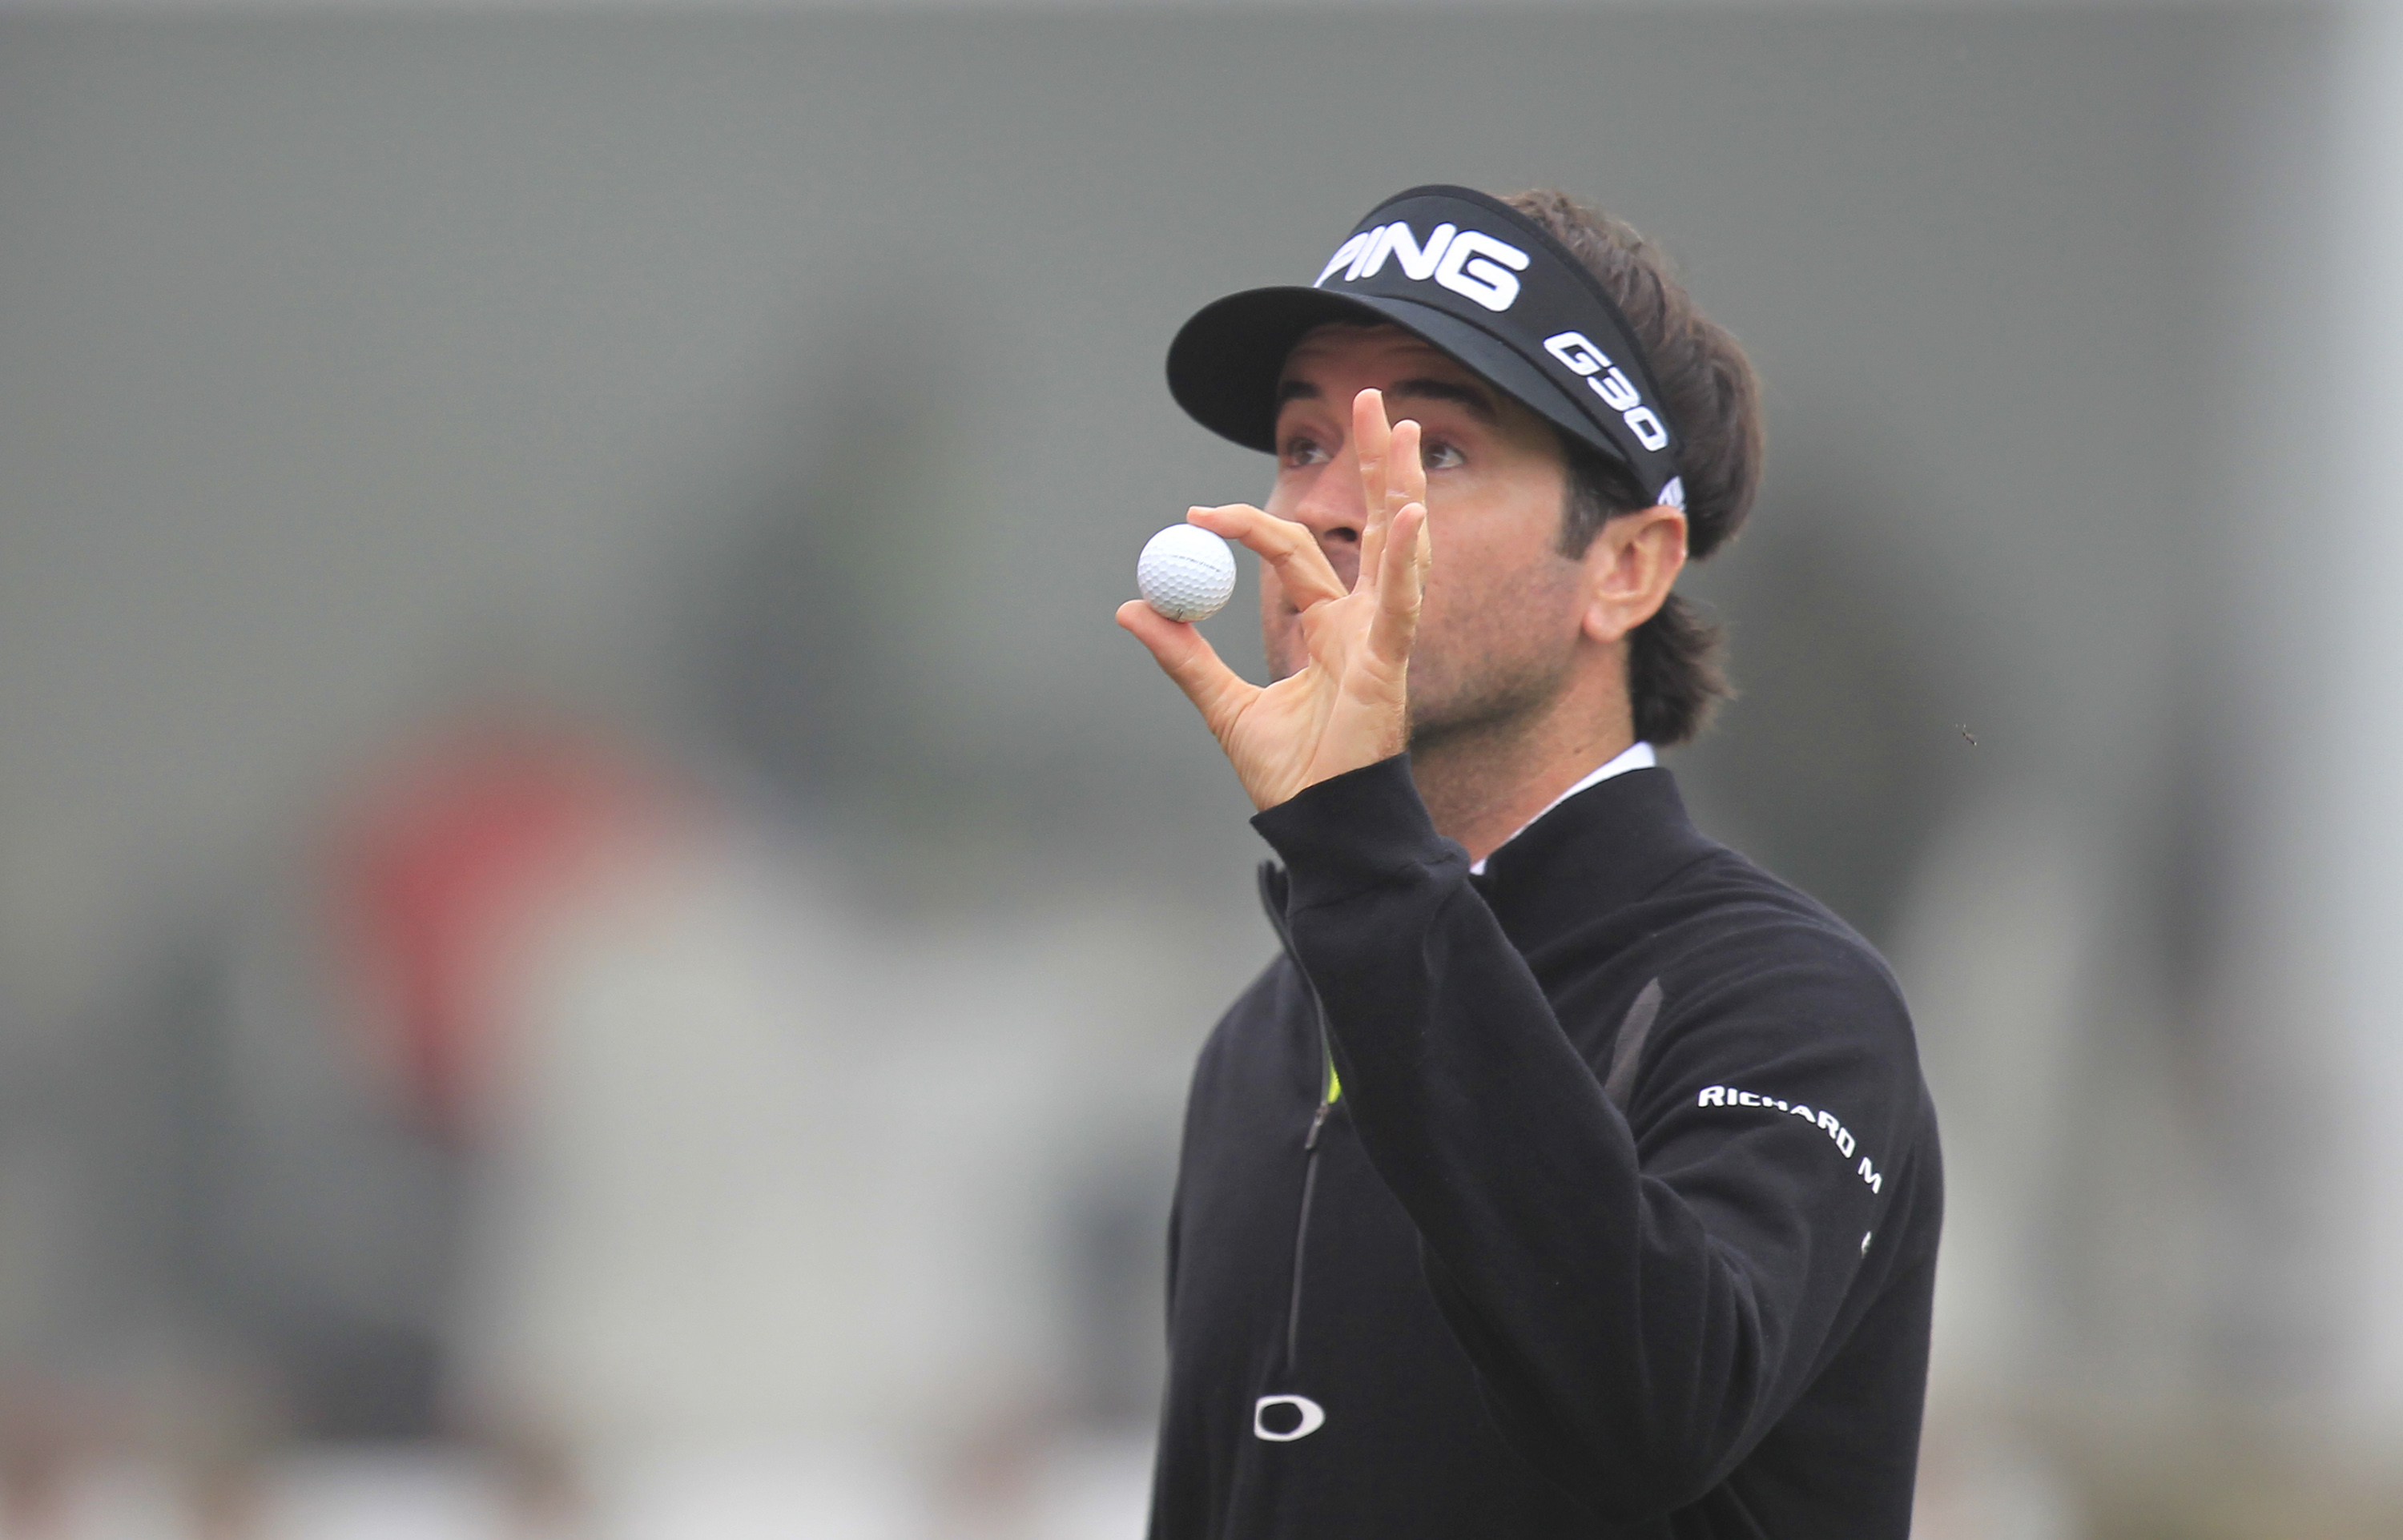 Bubba Watson of the United States greets spectators on the 18th hole after the final round of the HSBC Champions golf tournament at the Sheshan International Golf Club in Shanghai, China Sunday, Nov. 8, 2015. (AP Photo)